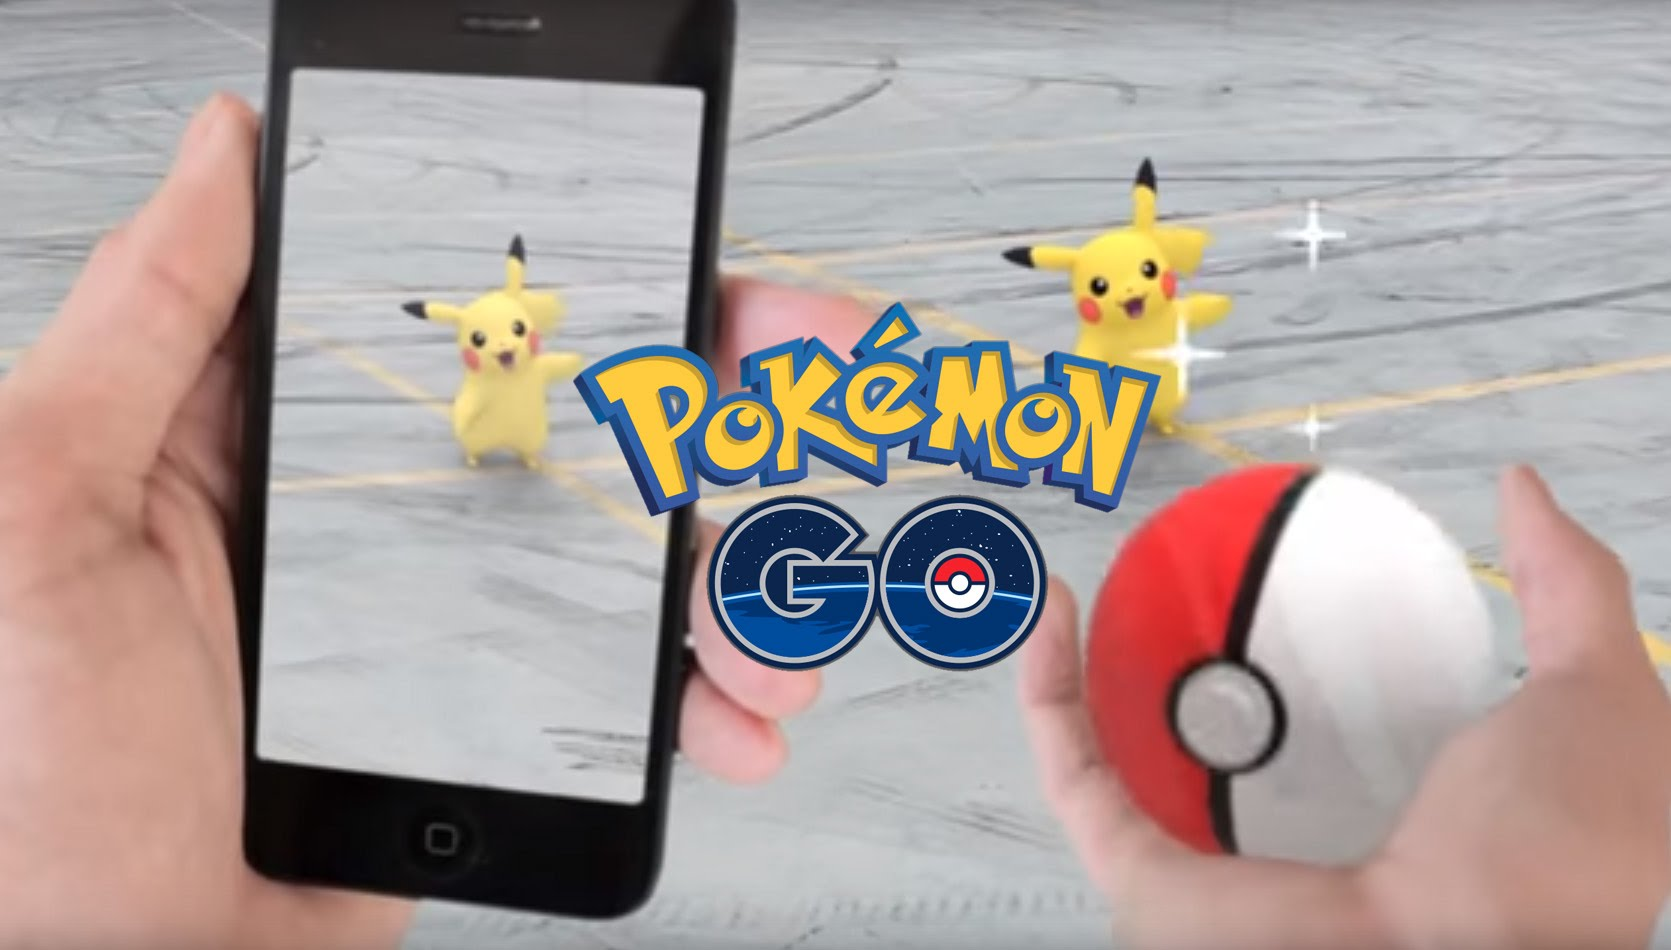 'Pokemon Go' Banned From All IDF Bases